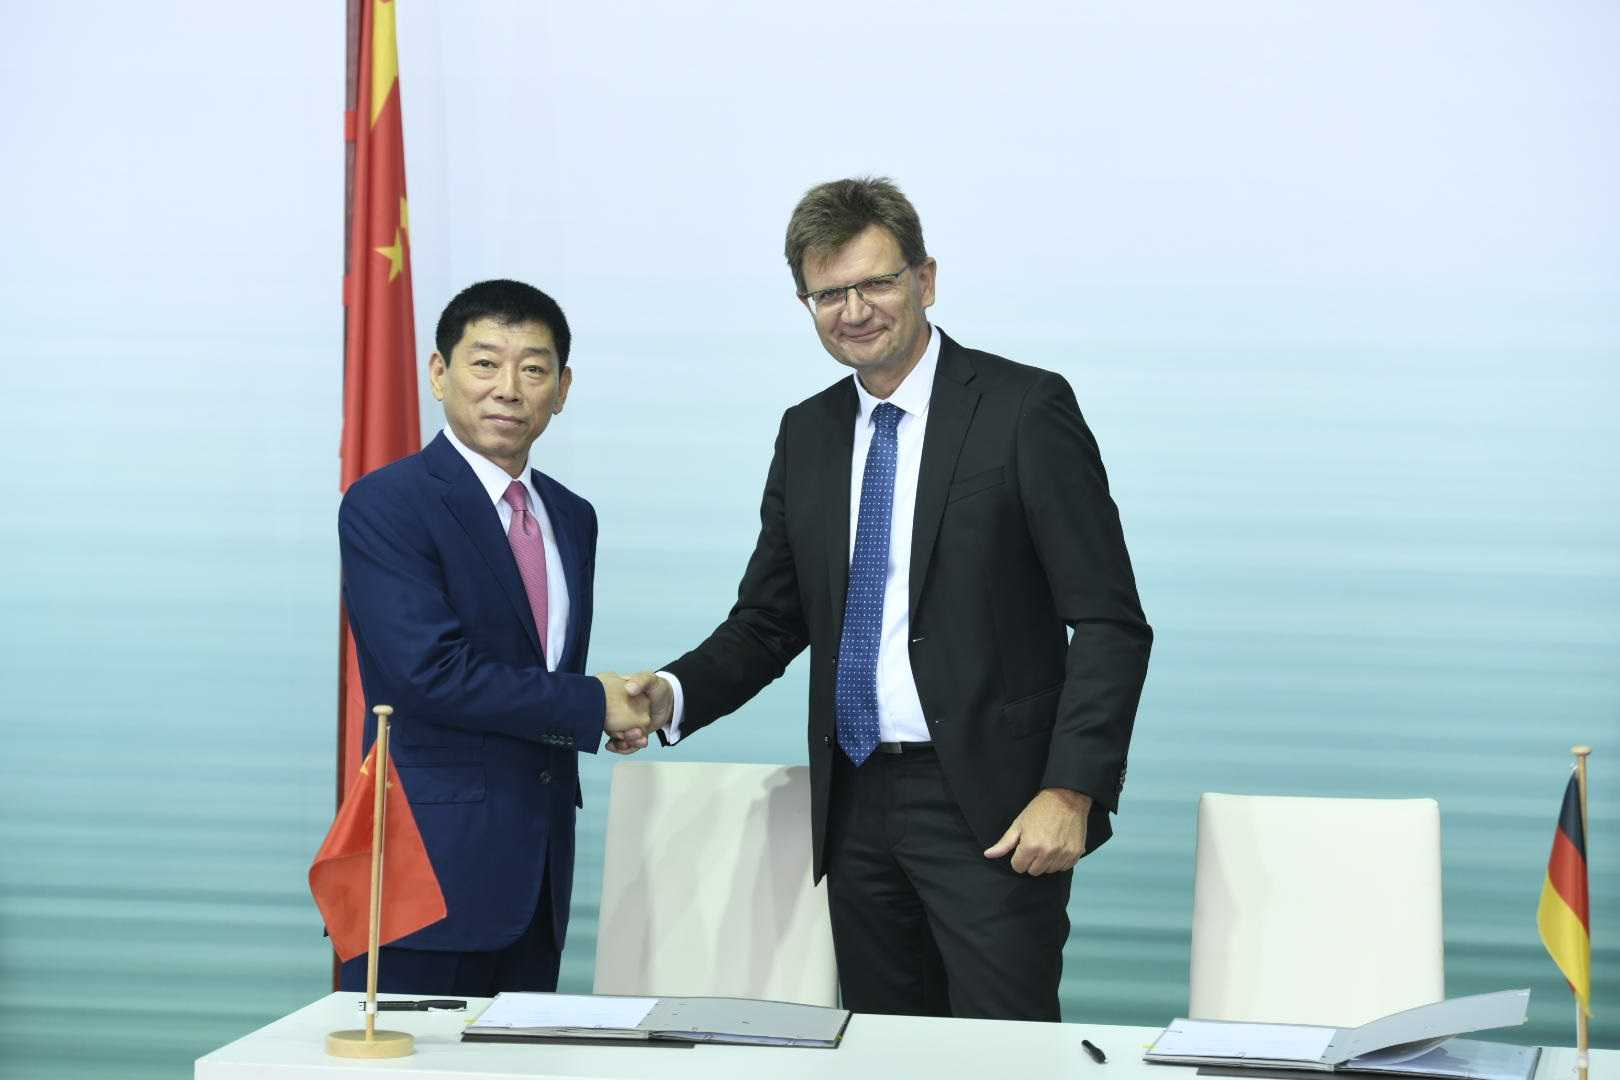 https://mediapool.bmwgroup.com/cache/P9/201807/P90314181/P90314181-signing-of-the-joint-venture-agreement-between-bmw-group-and-great-wall-motor-for-the-production-of--1620px.jpg